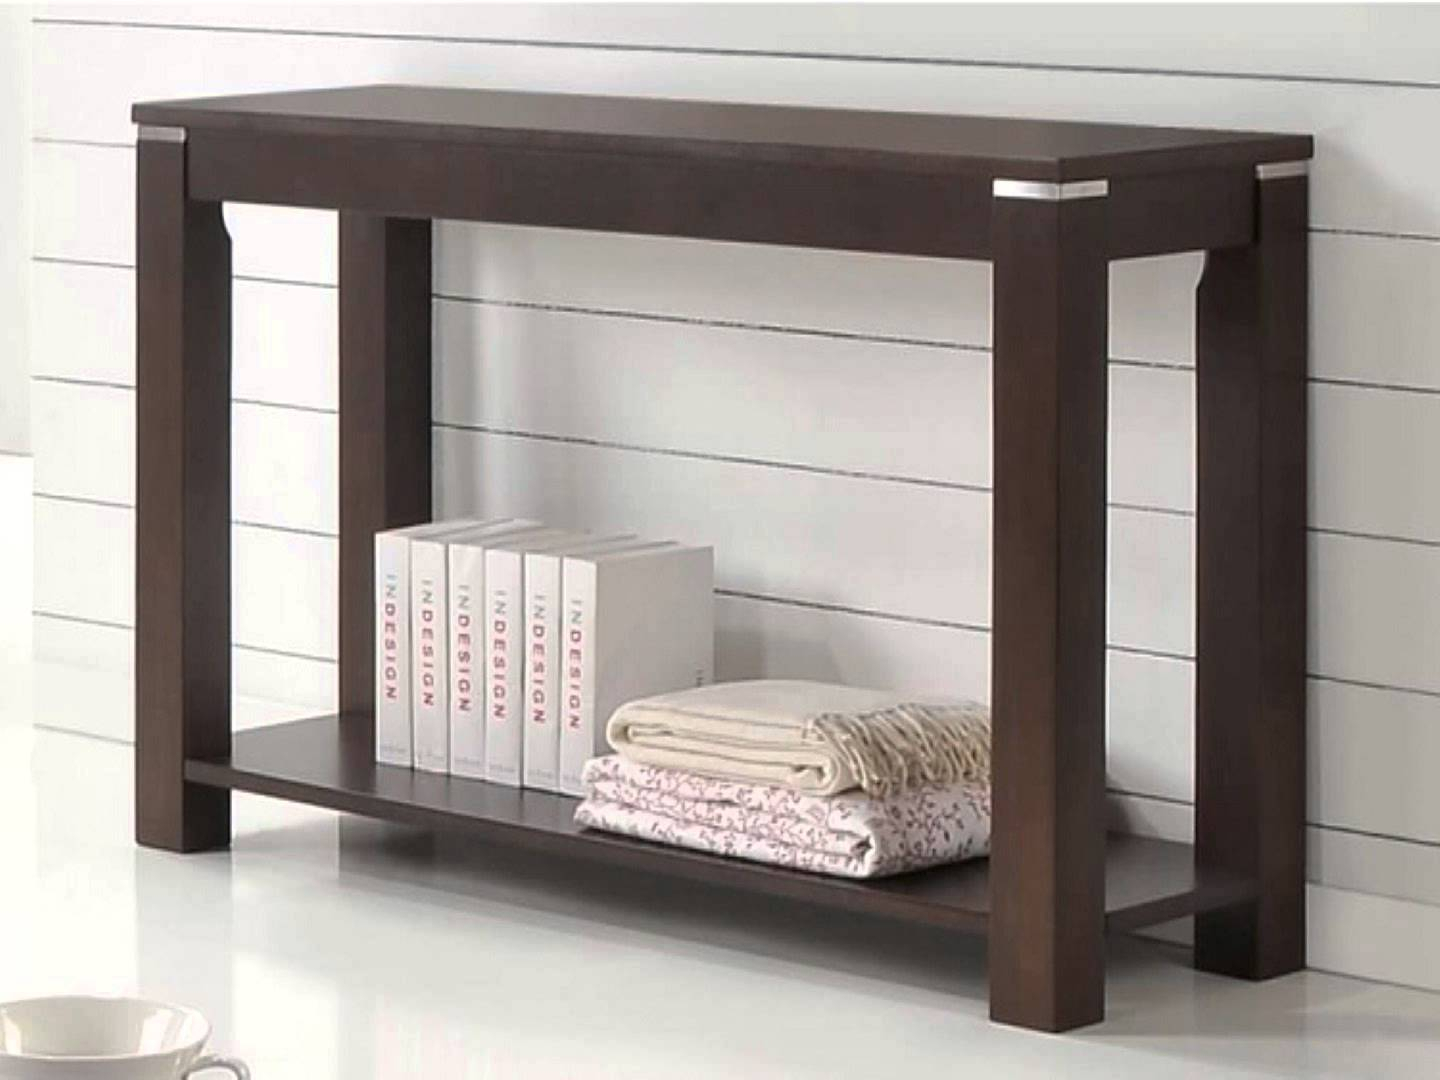 Sofa Table: Appealing Contemporary Sofa Table Design Skinny Console Inside Parsons Grey Solid Surface Top & Brass Base 48x16 Console Tables (View 17 of 30)